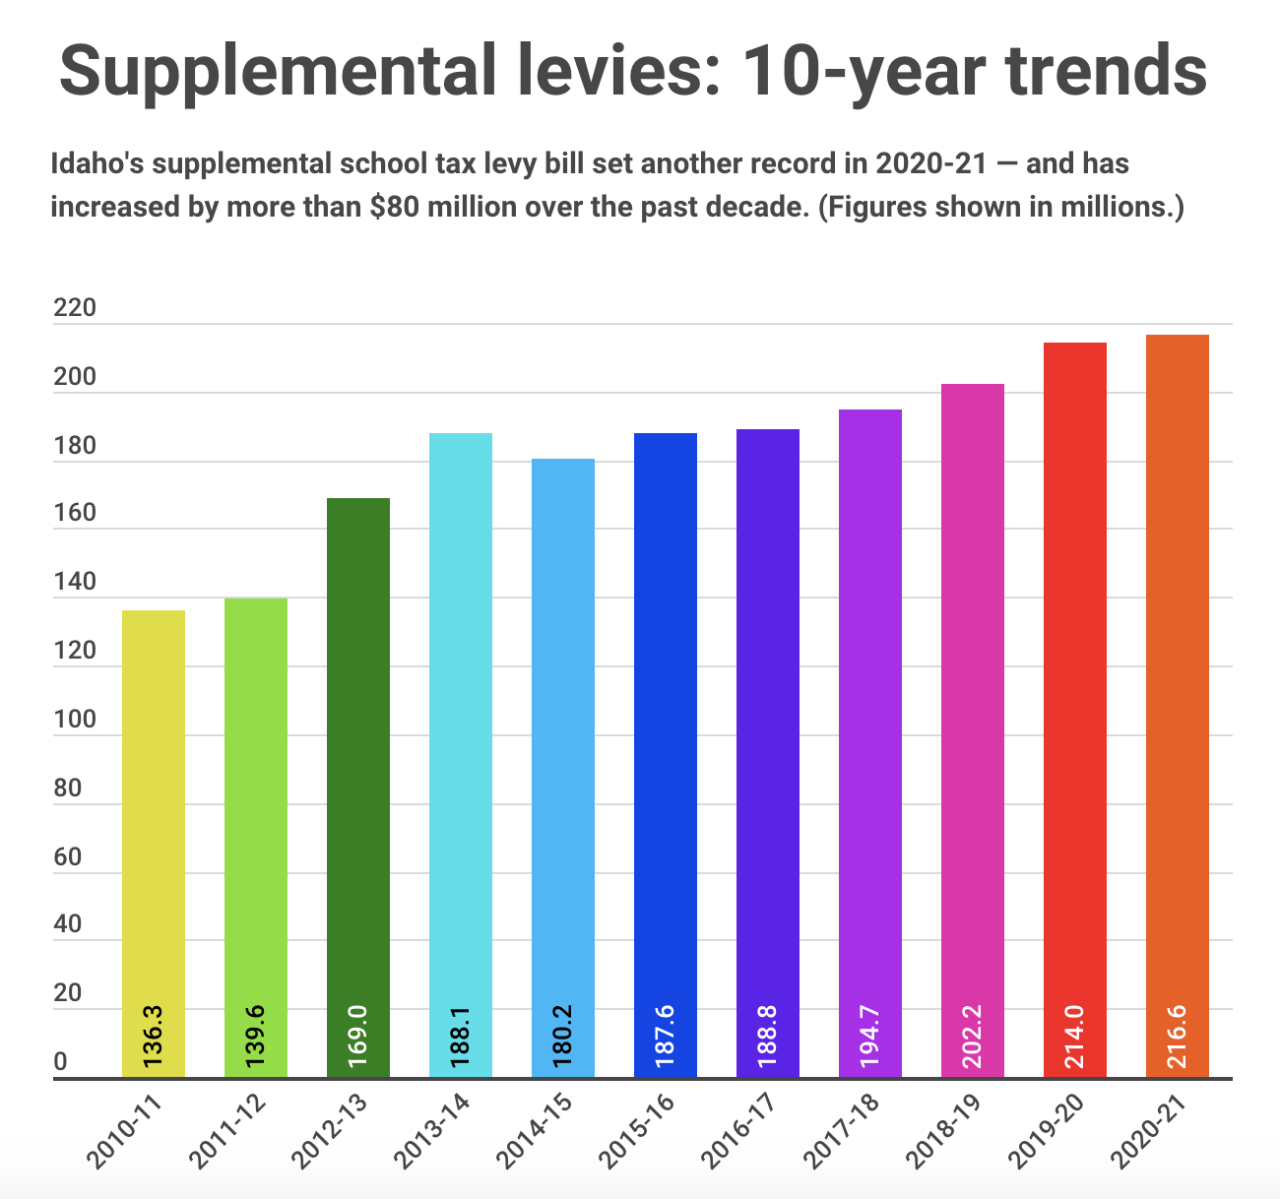 Supplemental-levies-2020-21.png